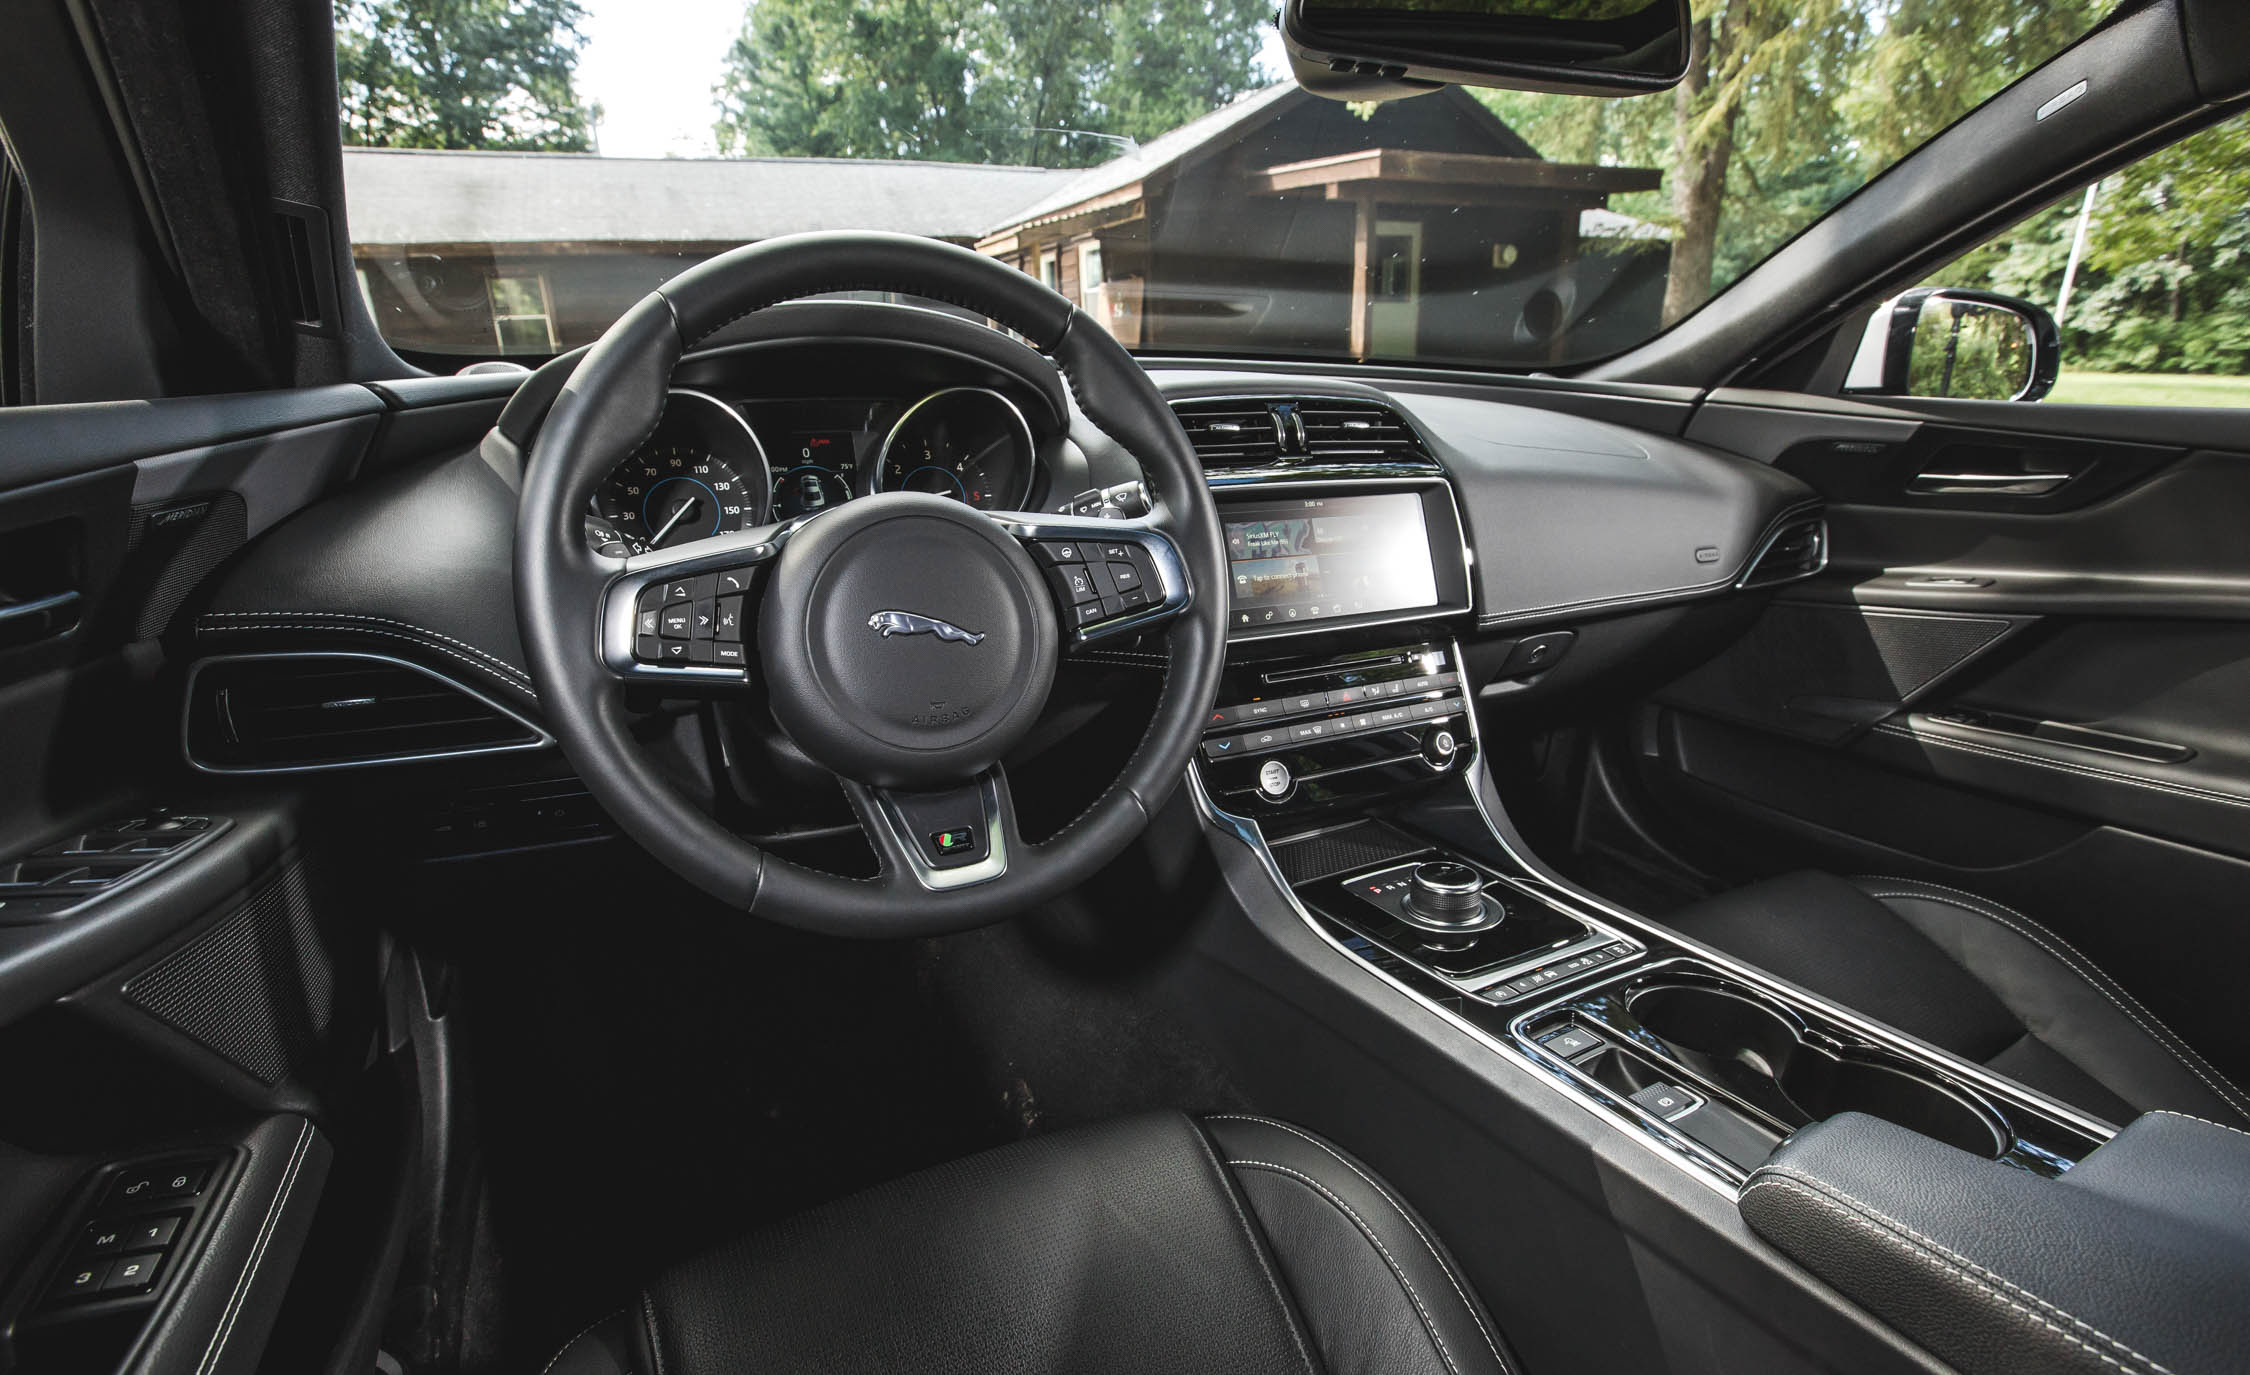 2017 Jaguar Xe Interior Cockpit Steering And Dash (View 19 of 32)